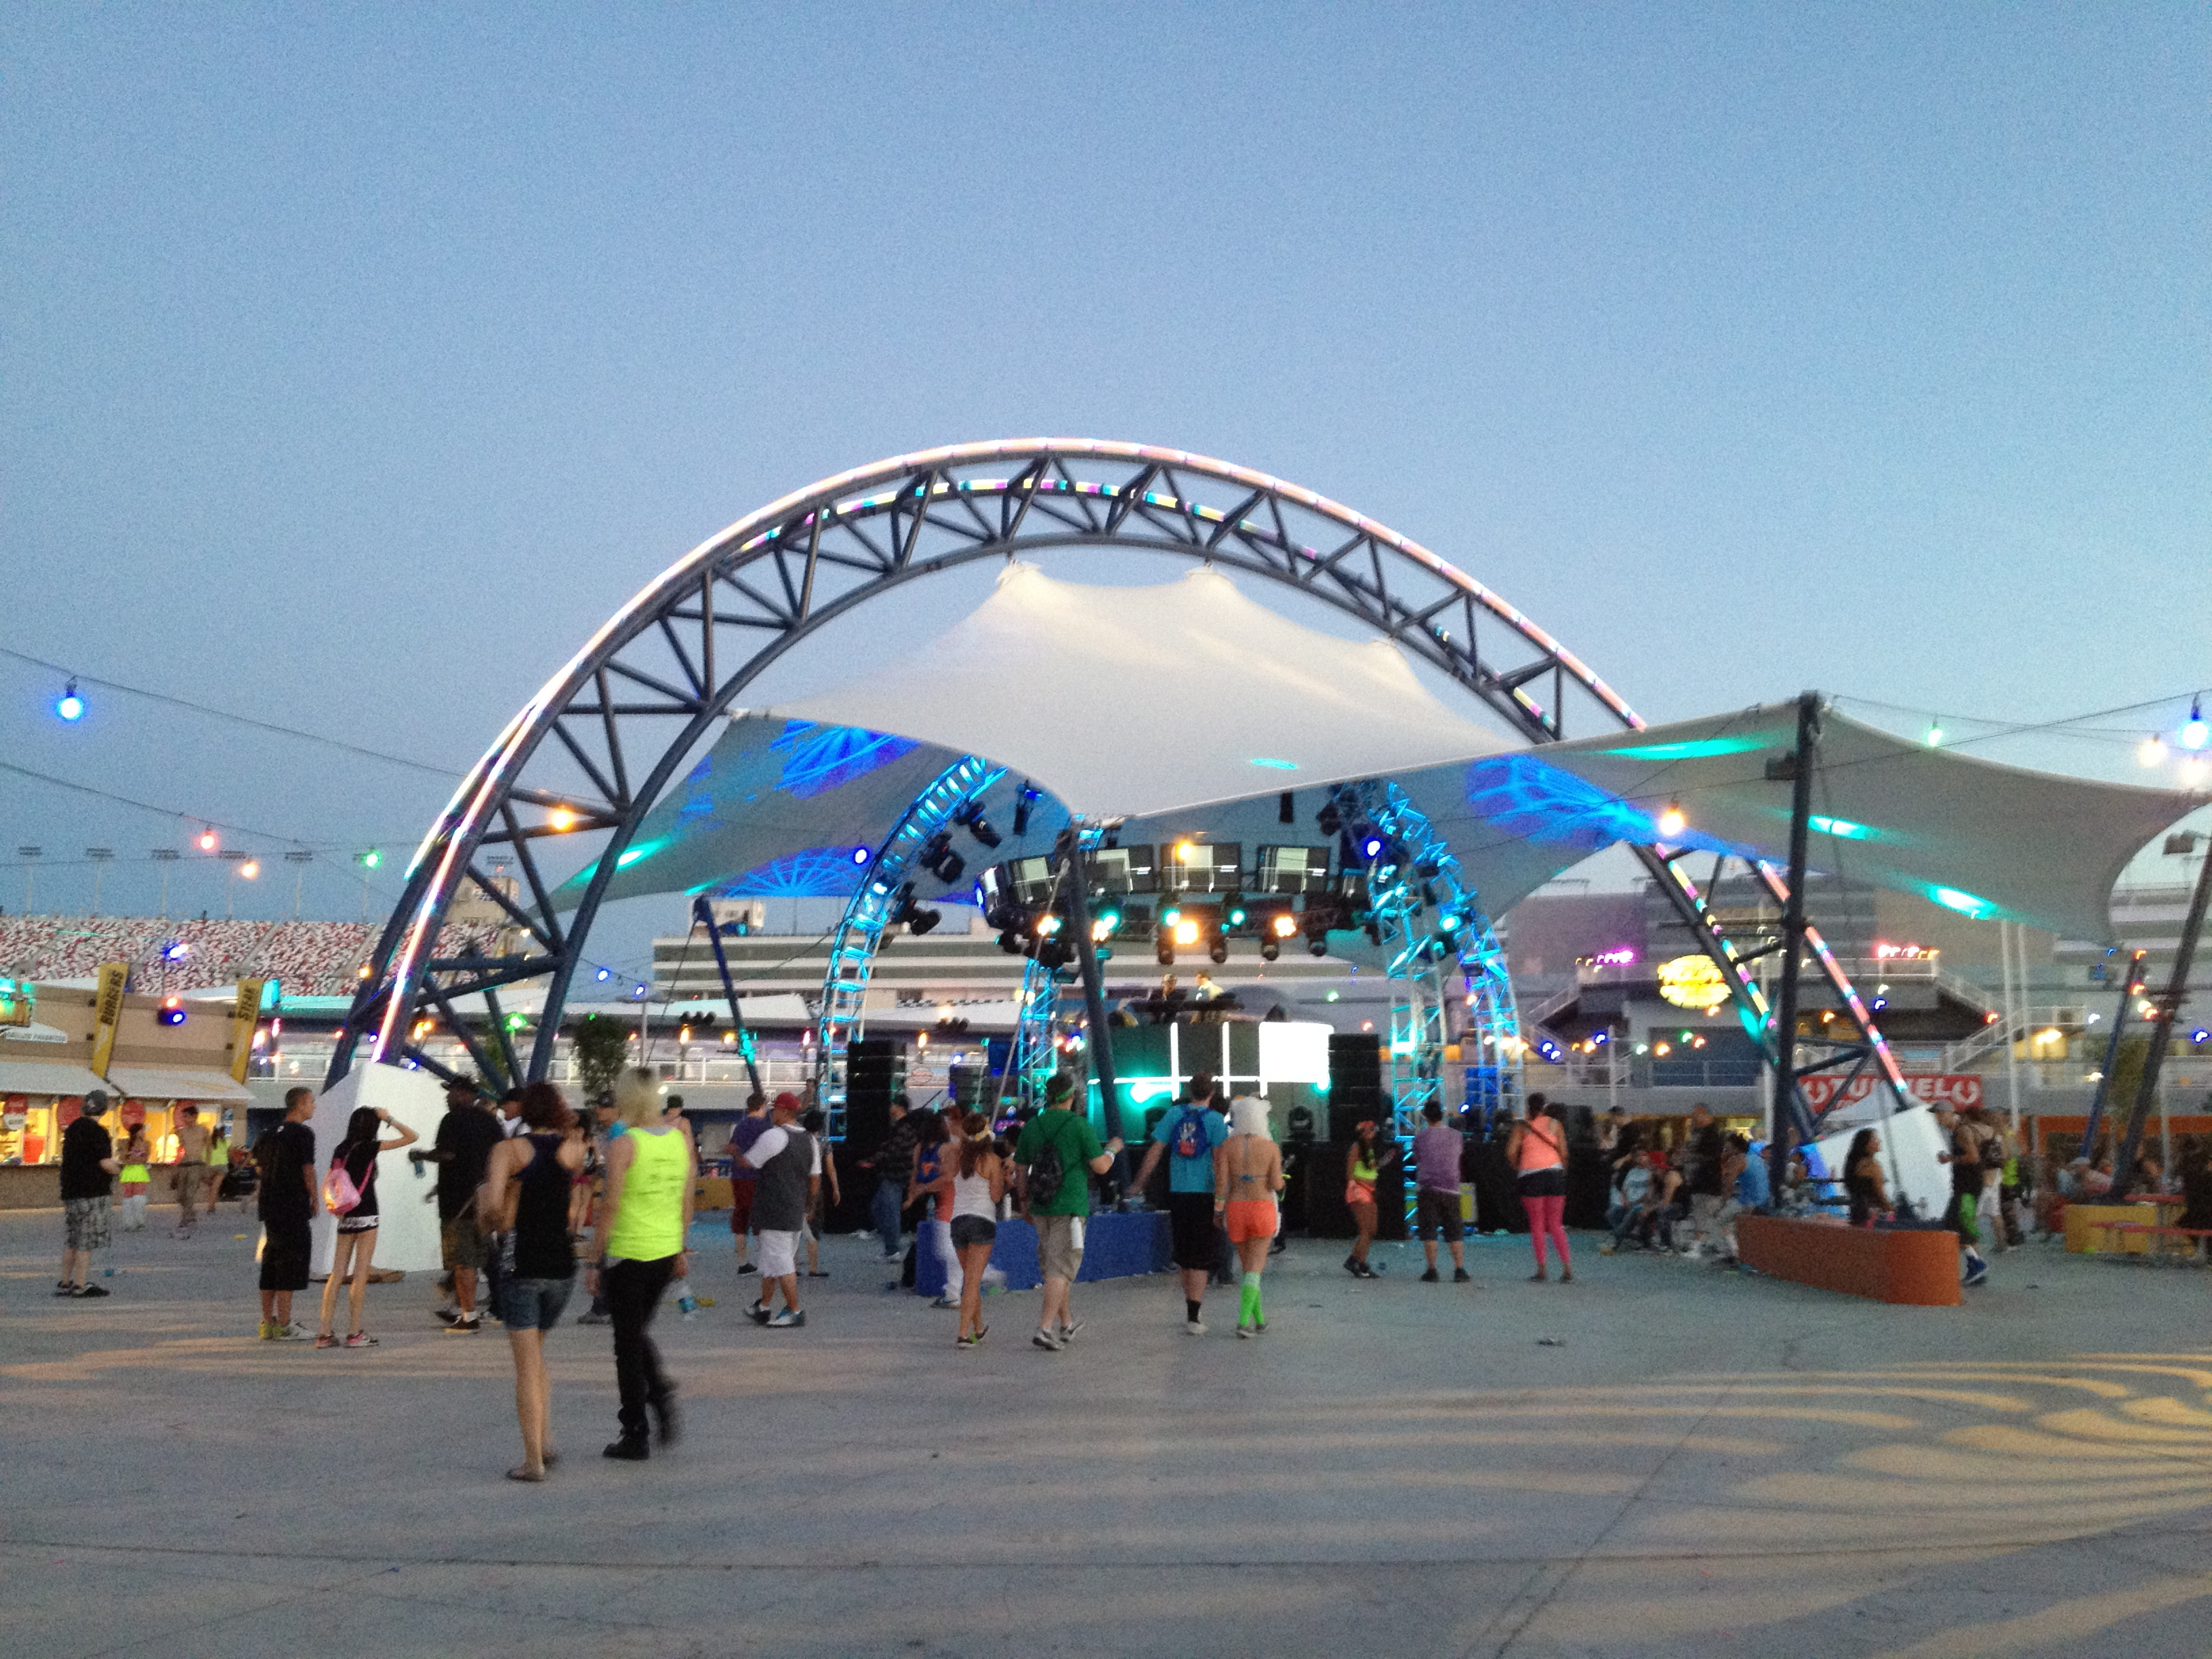 Center Small Stage at Electric Daisy Carnival